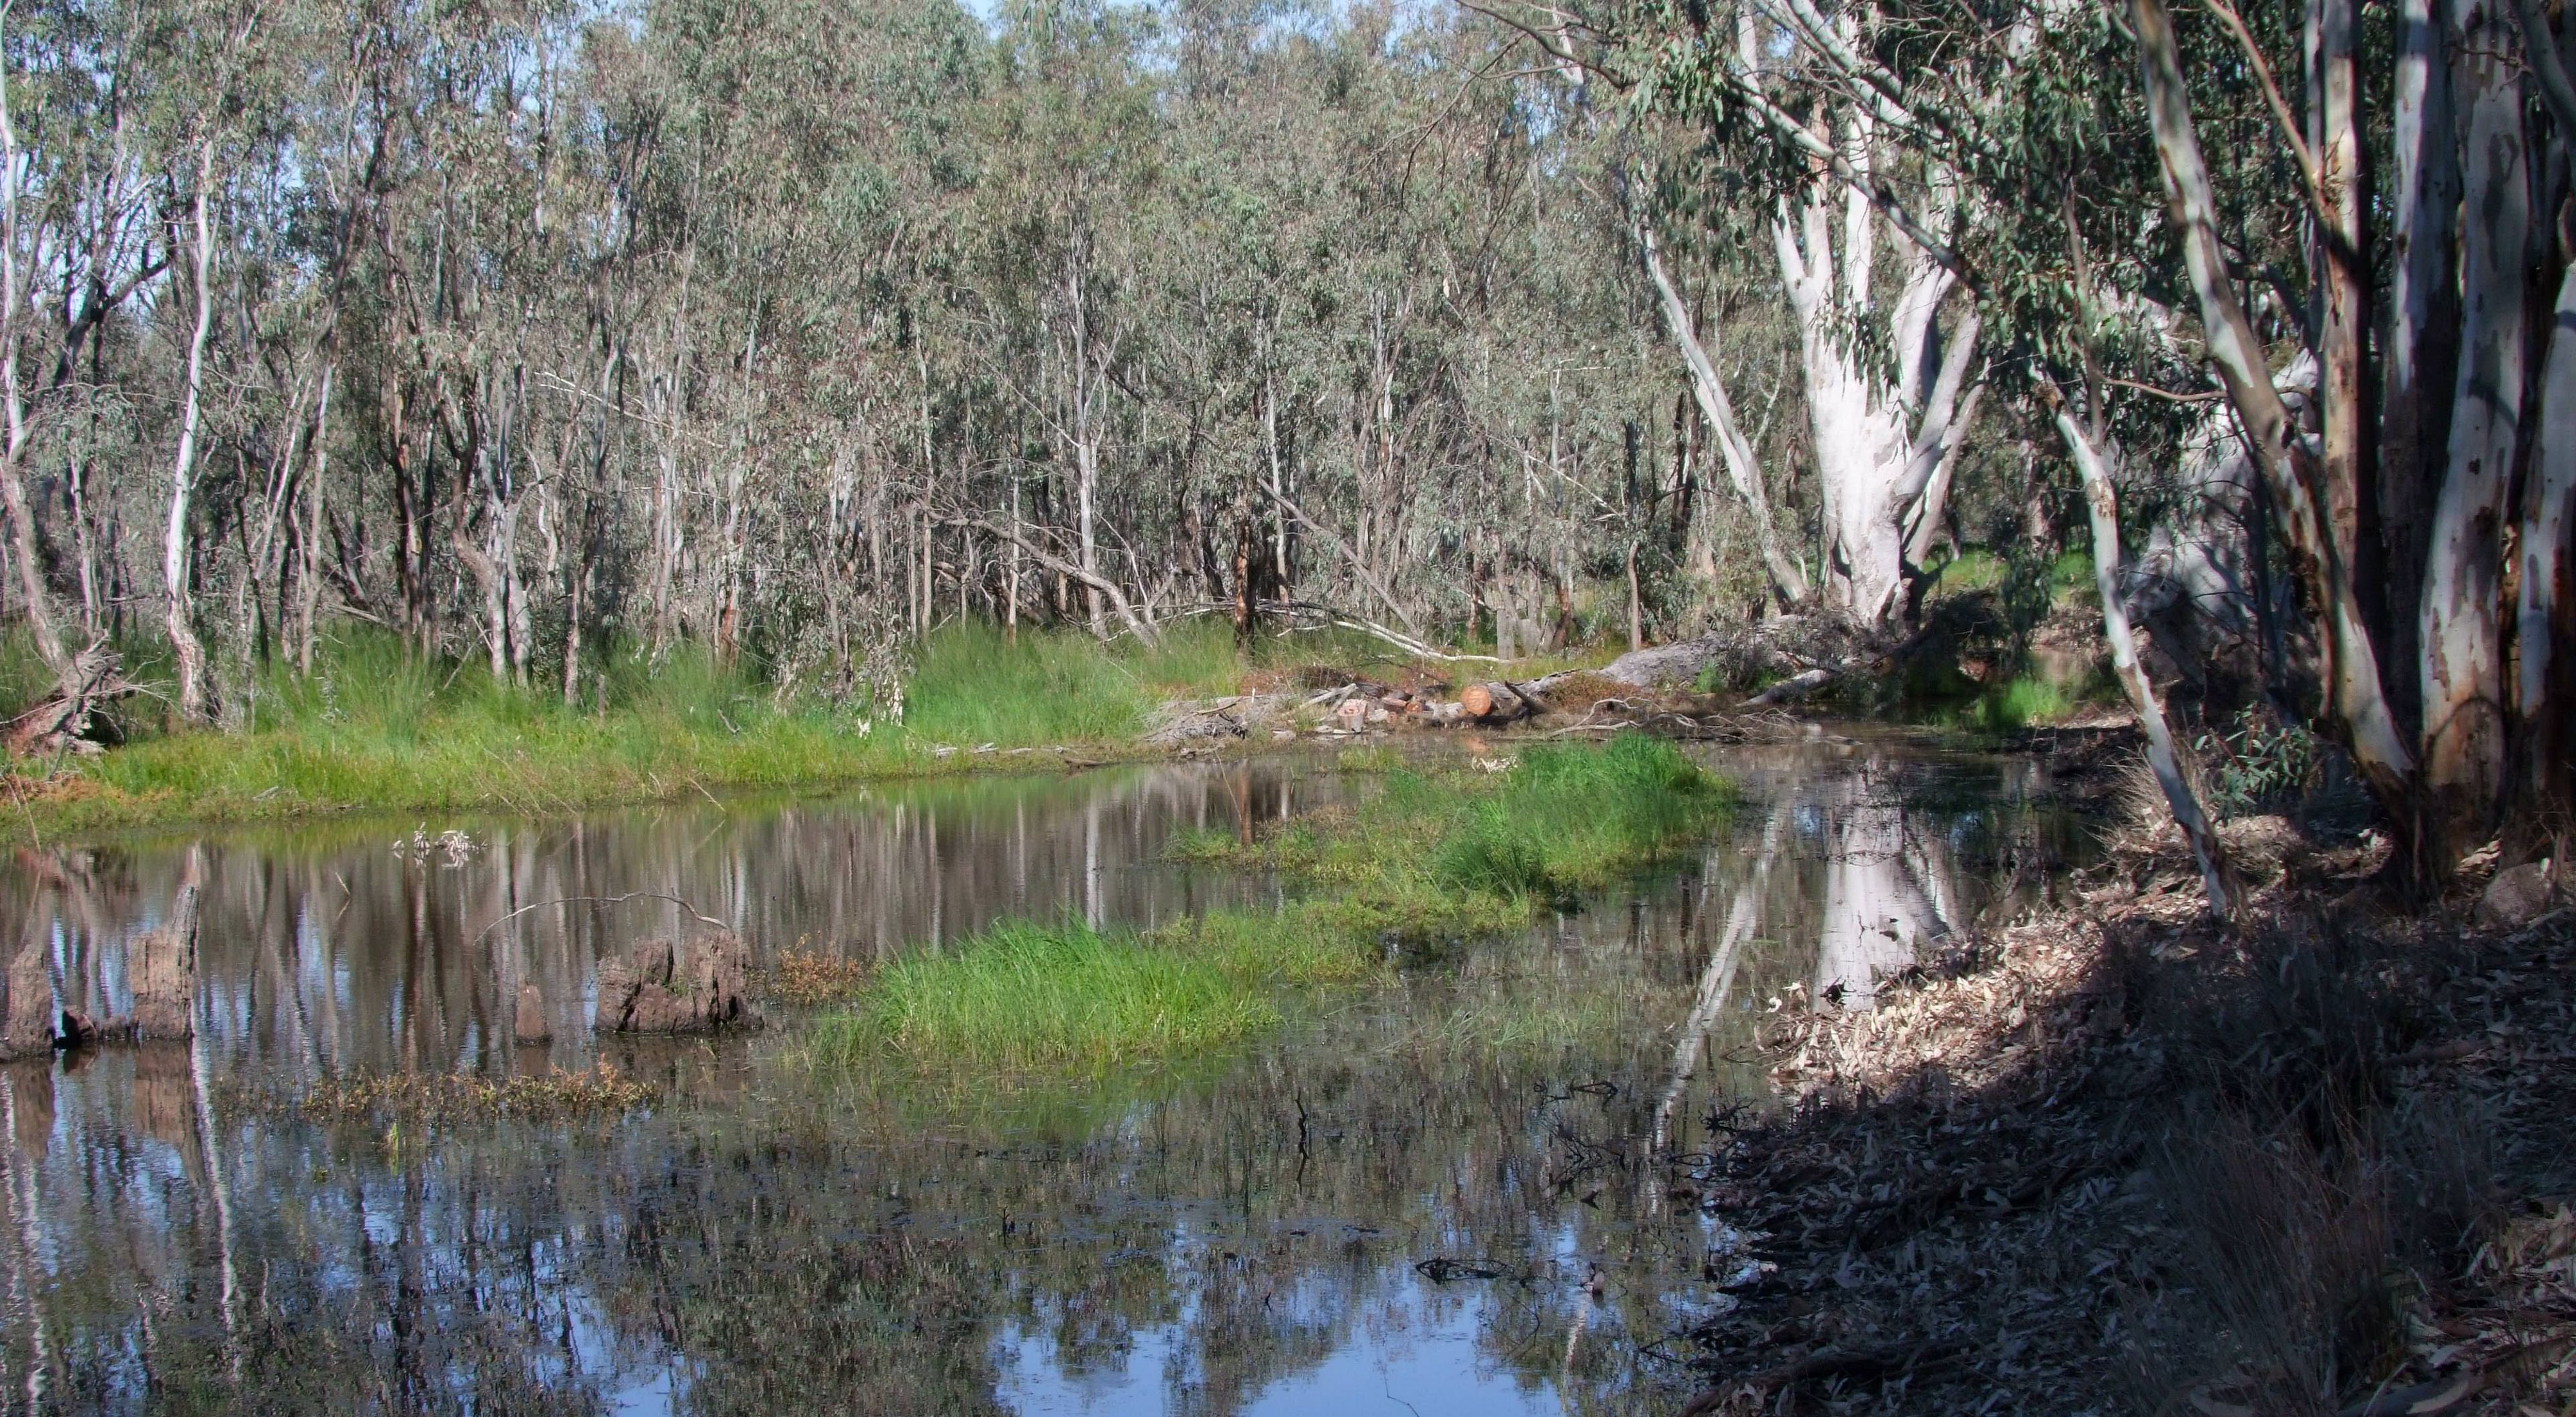 where TNC had a purposeful flooding supported by the Murray-Darling Basin Balanced Water Fund